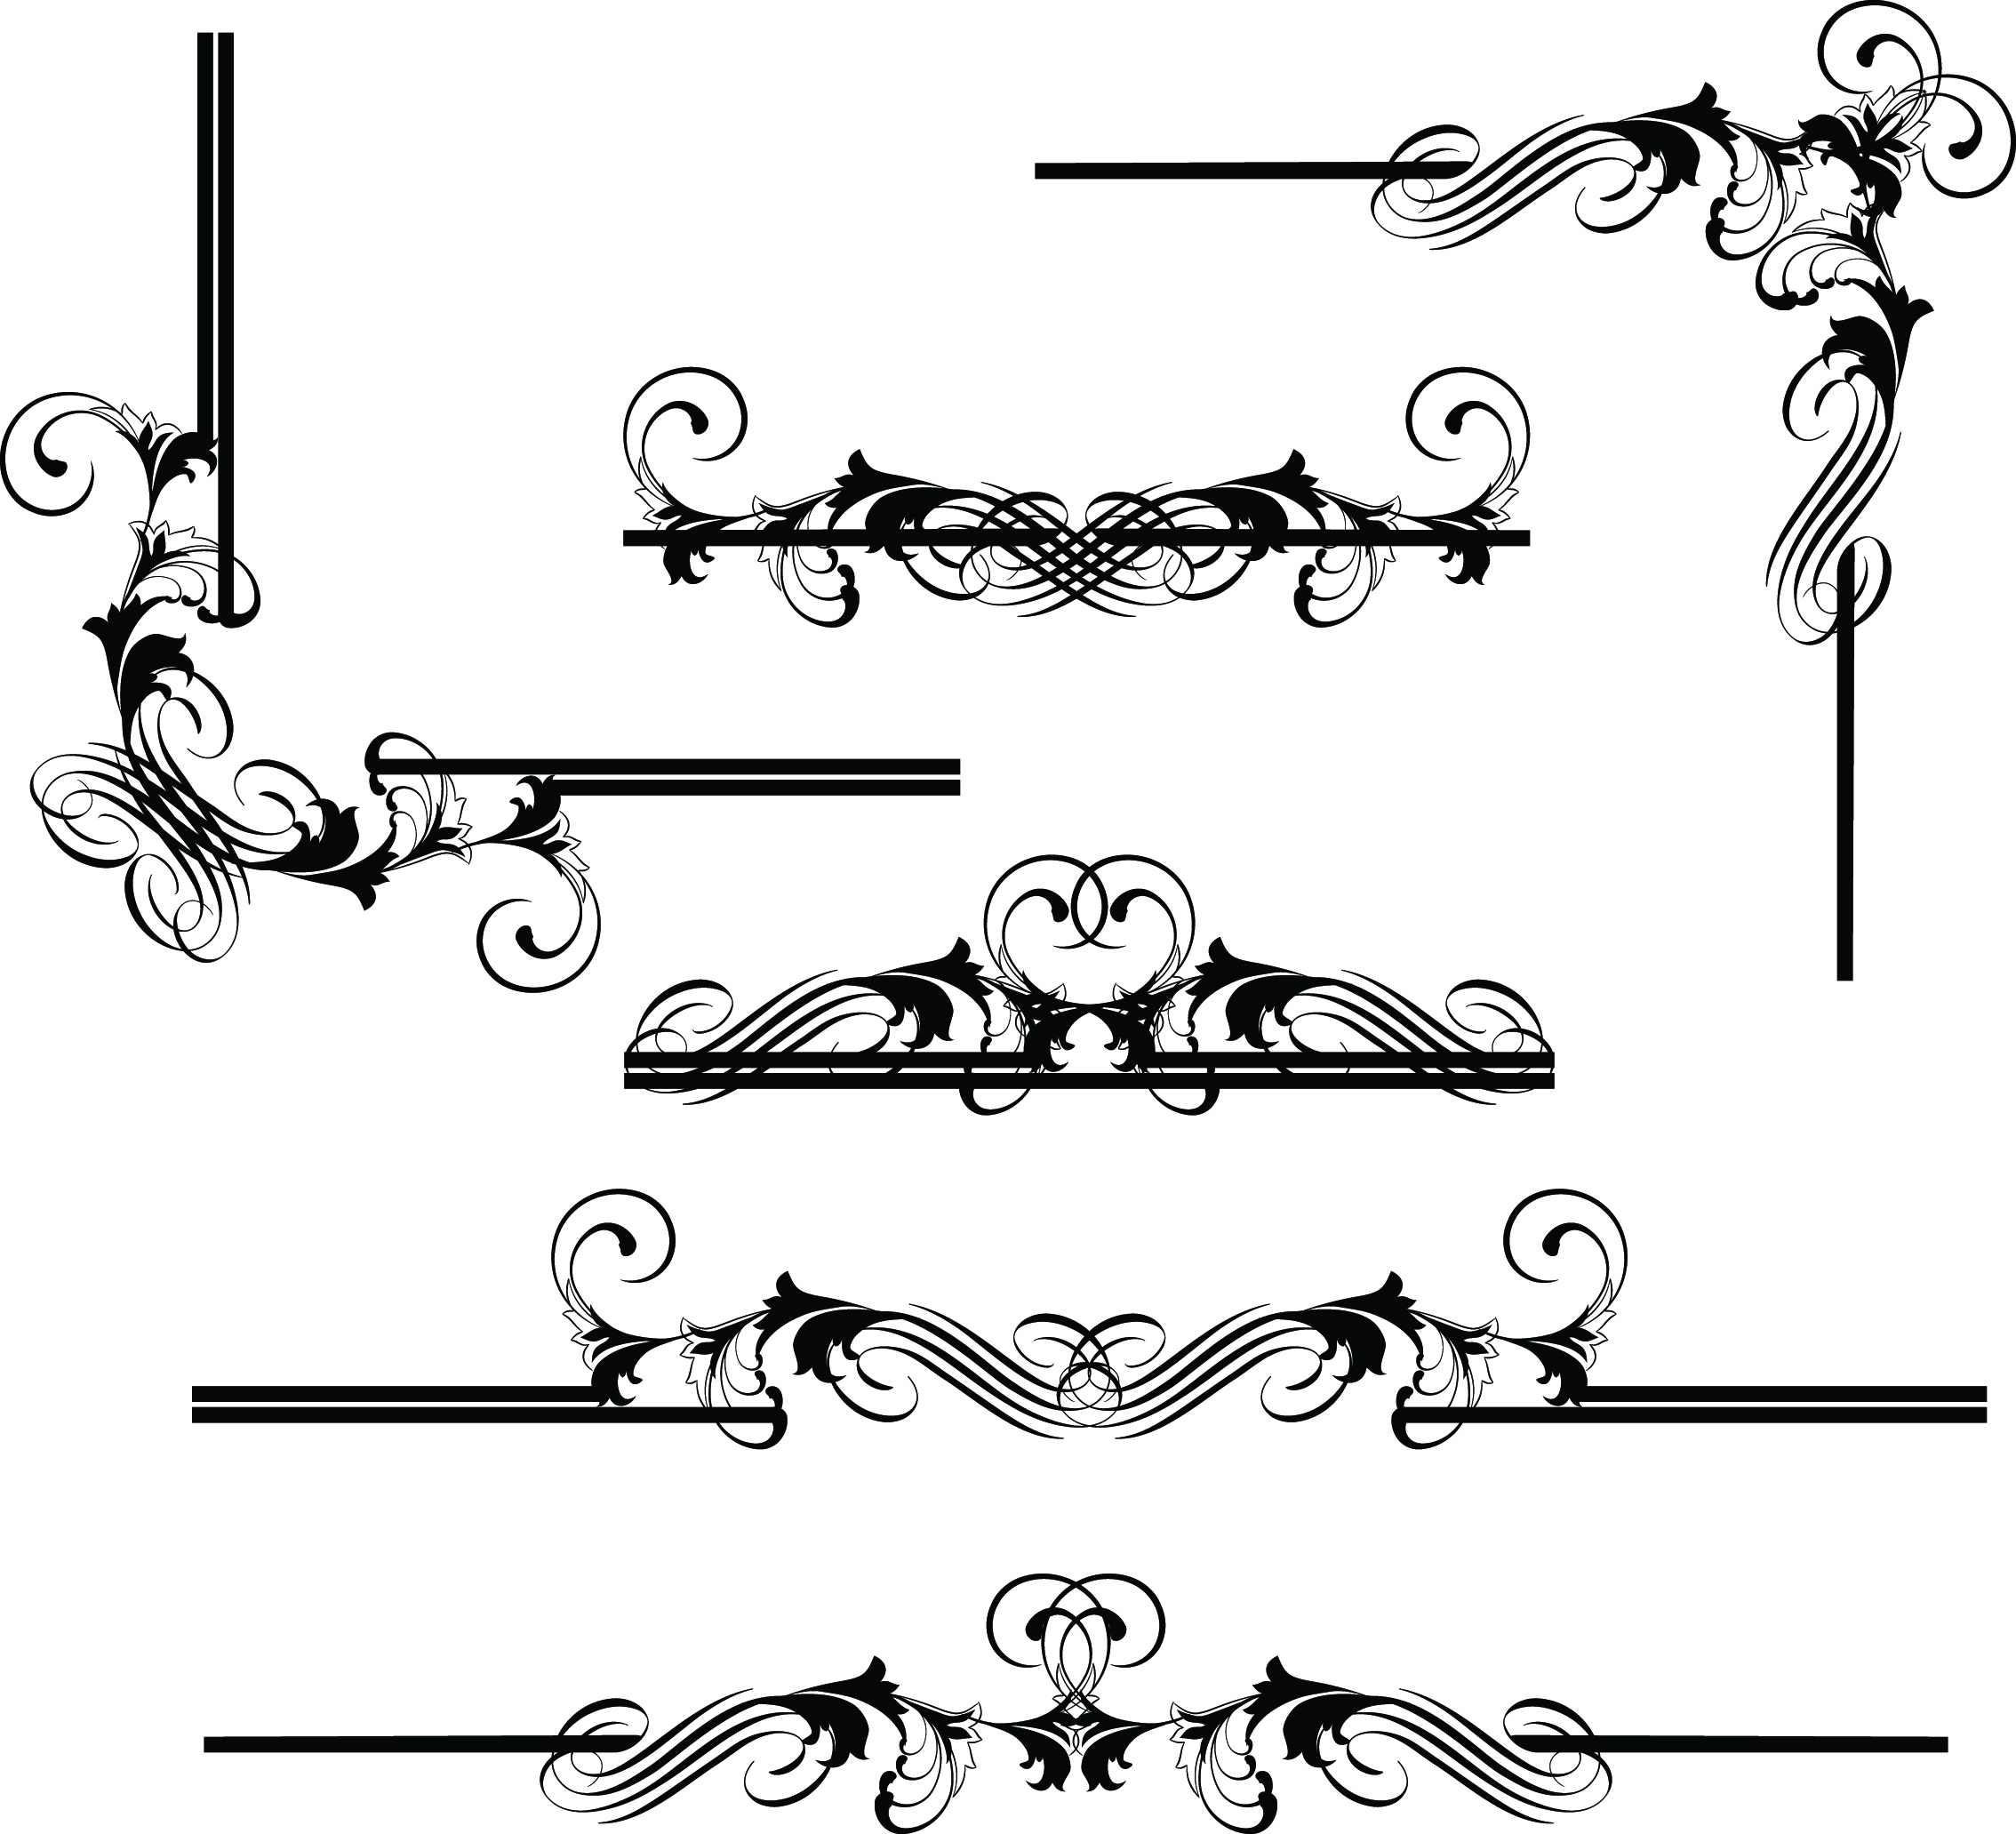 Free Border Vector, Download Free Clip Art, Free Clip Art on Clipart.